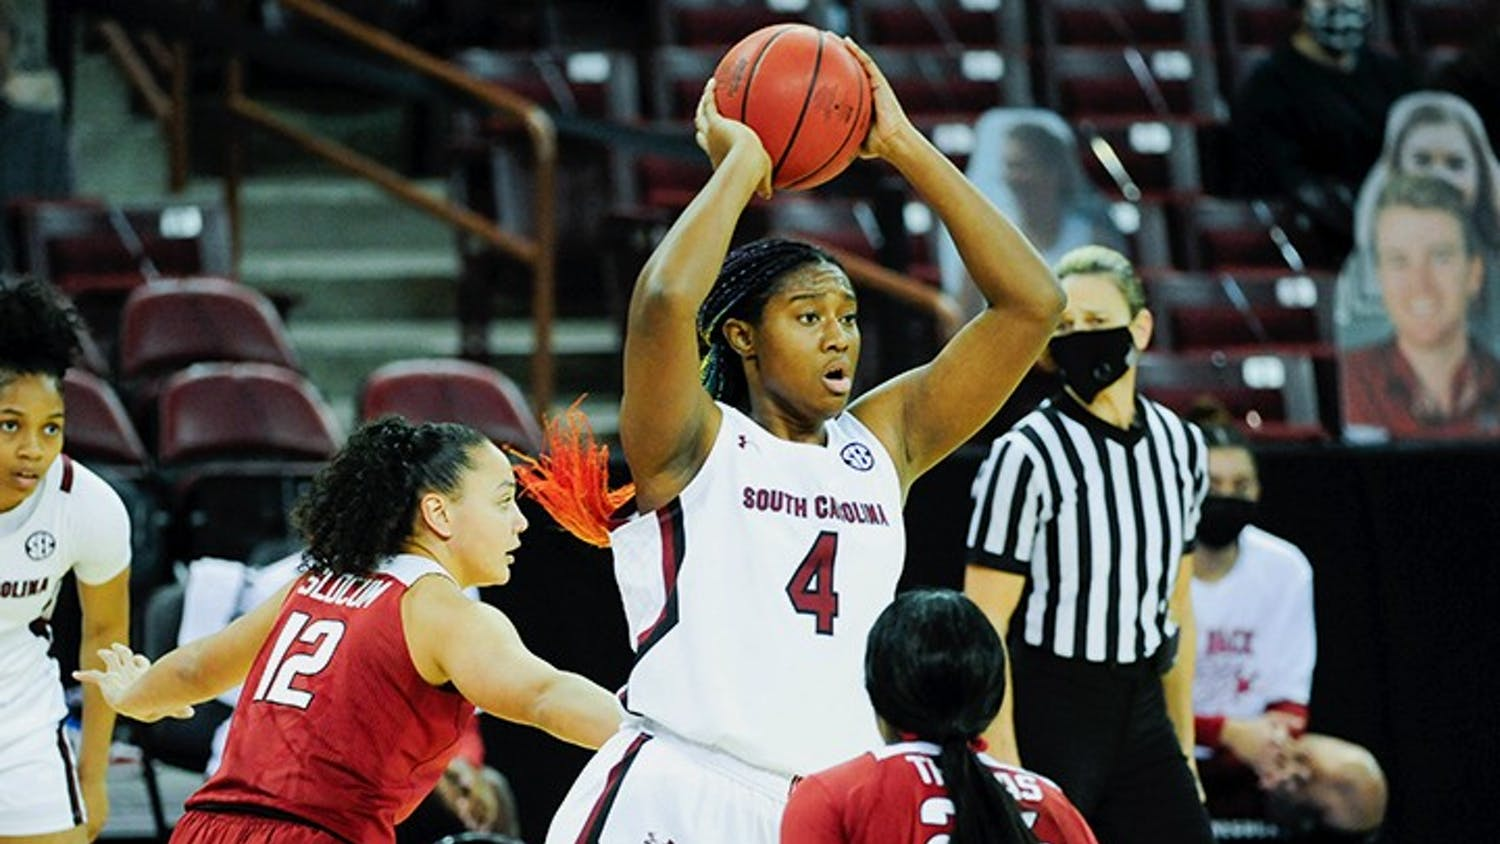 Sophomore forward Aliyah Boston looks to make a pass in South Carolina's Monday win over Arkansas. The Gamecocks beat the Razorbacks 104-82.